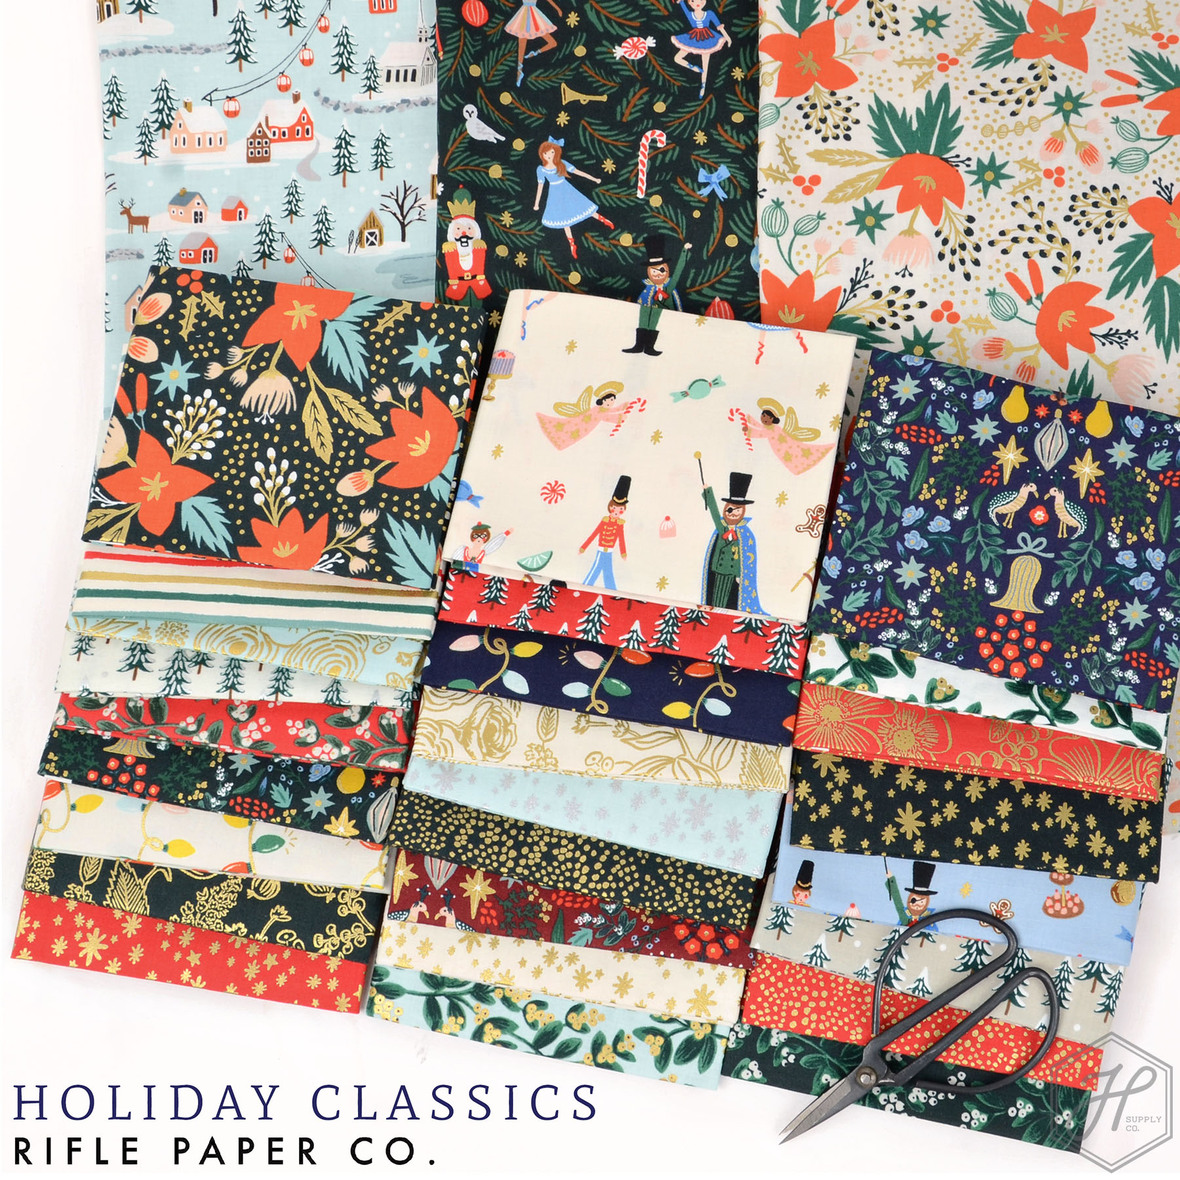 Holiday Classics Fabric Poster Rifle Paper Co at Hawthorne Supply Co